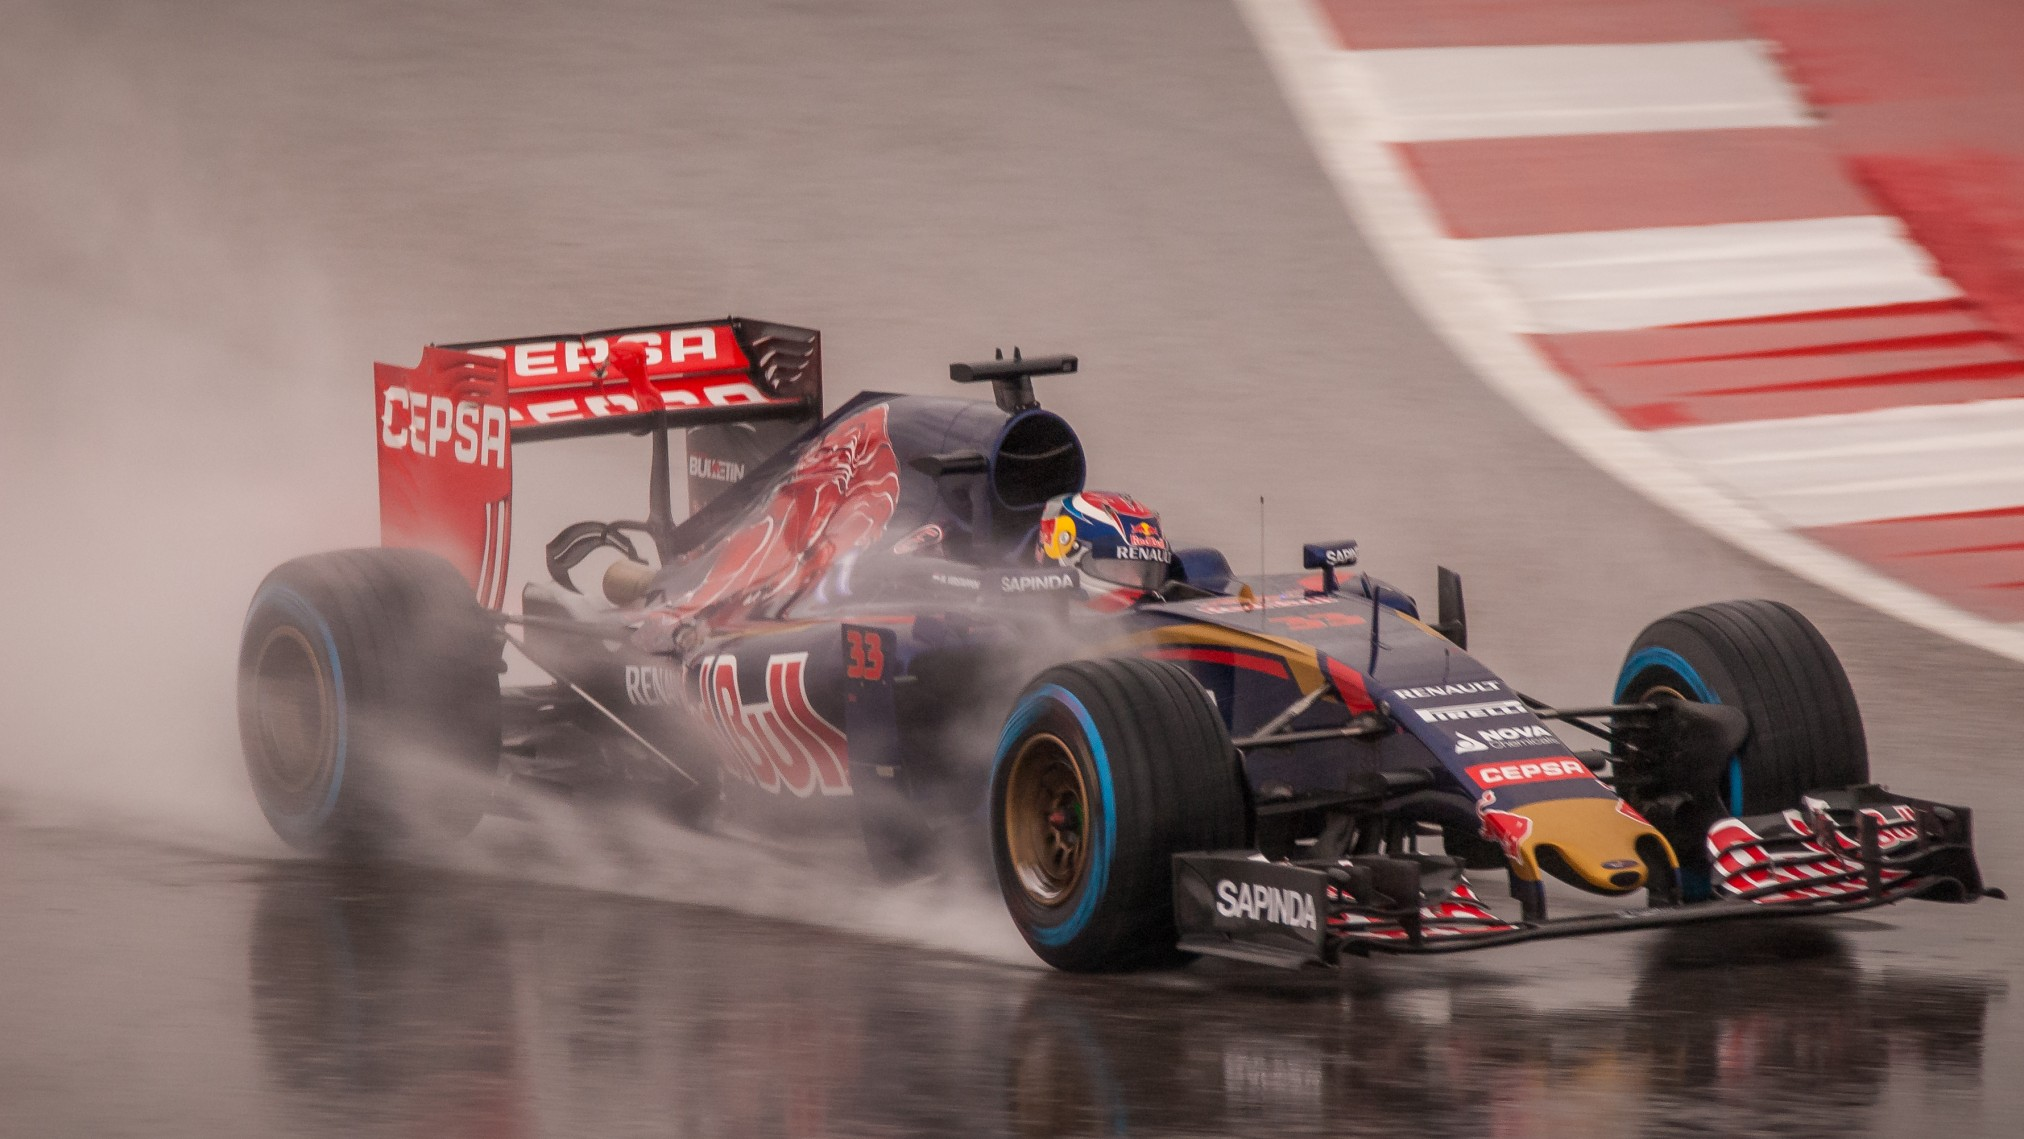 Max Verstappen showing he can race in wet conditions. Photograph: Joe McGowan